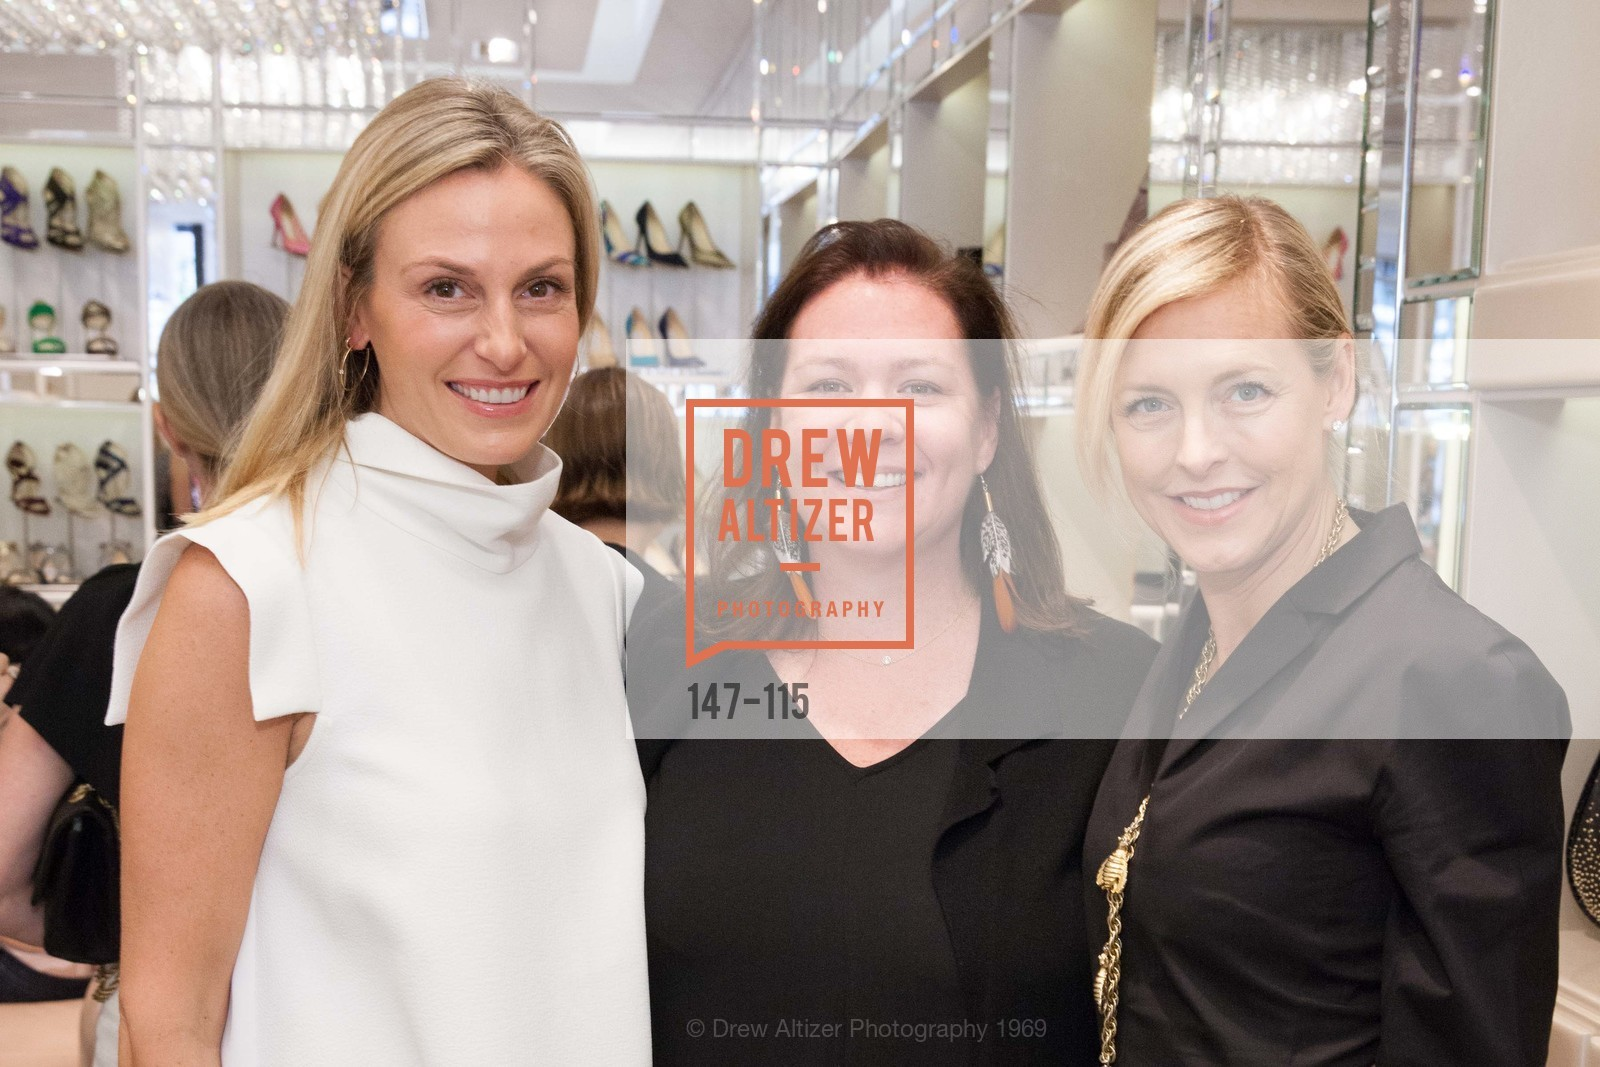 Top picks, Jimmy Choo Bubbles, Bites & Stiletto's to benefit AirCraft Casualty Emotional Support Services (ACCESS), May 13th, 2015, Photo,Drew Altizer, Drew Altizer Photography, full-service agency, private events, San Francisco photographer, photographer california